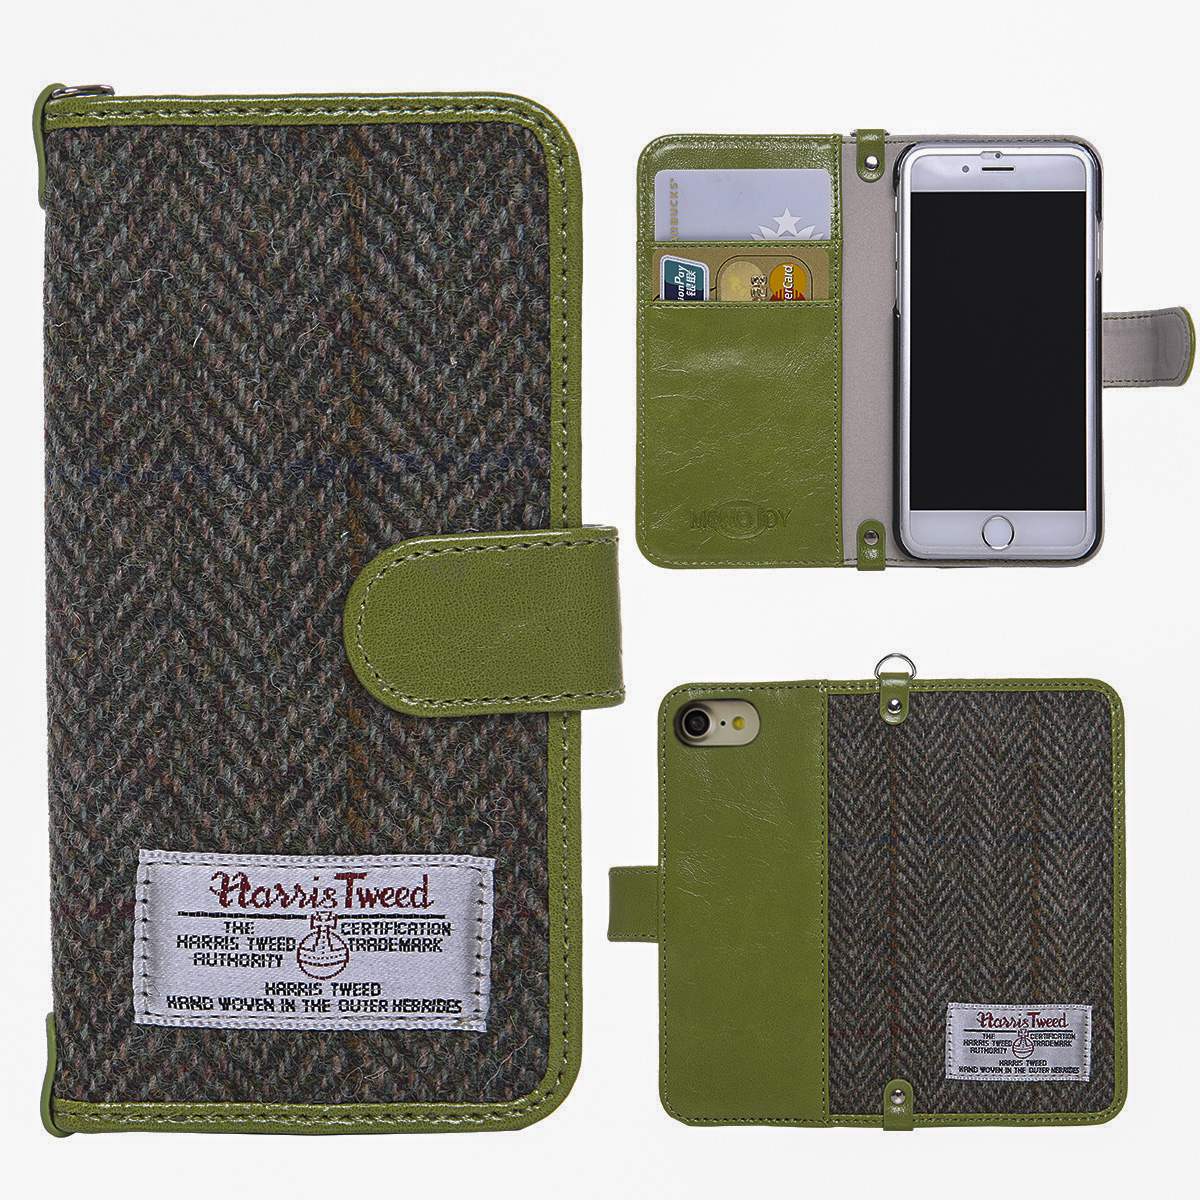 Harris Tweed Wallet Case,Non-Slip, Retro Magnetic Flip Cover Case for iPhone 7